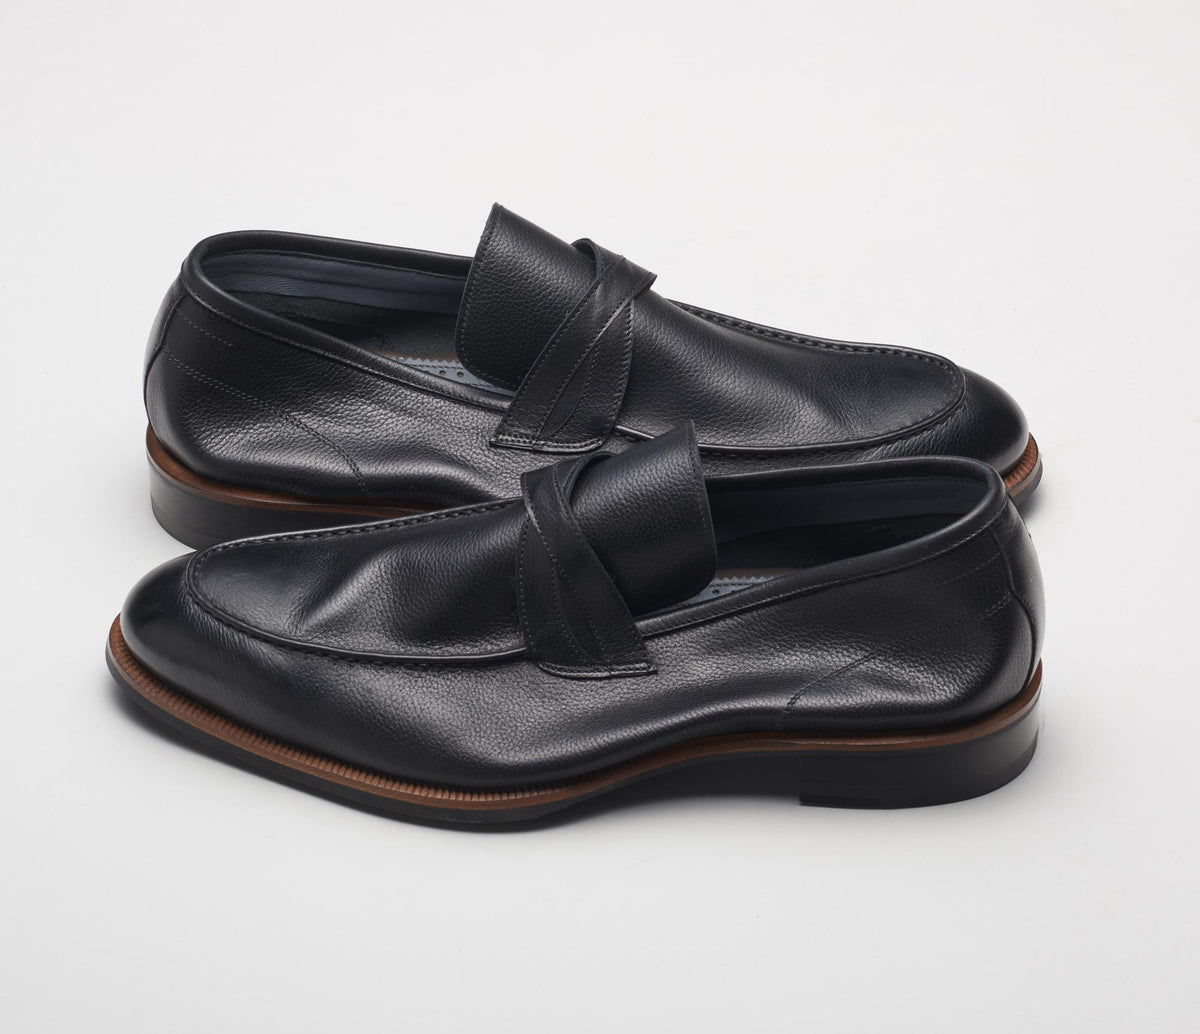 The Firenze Nero Men's Loafers Black